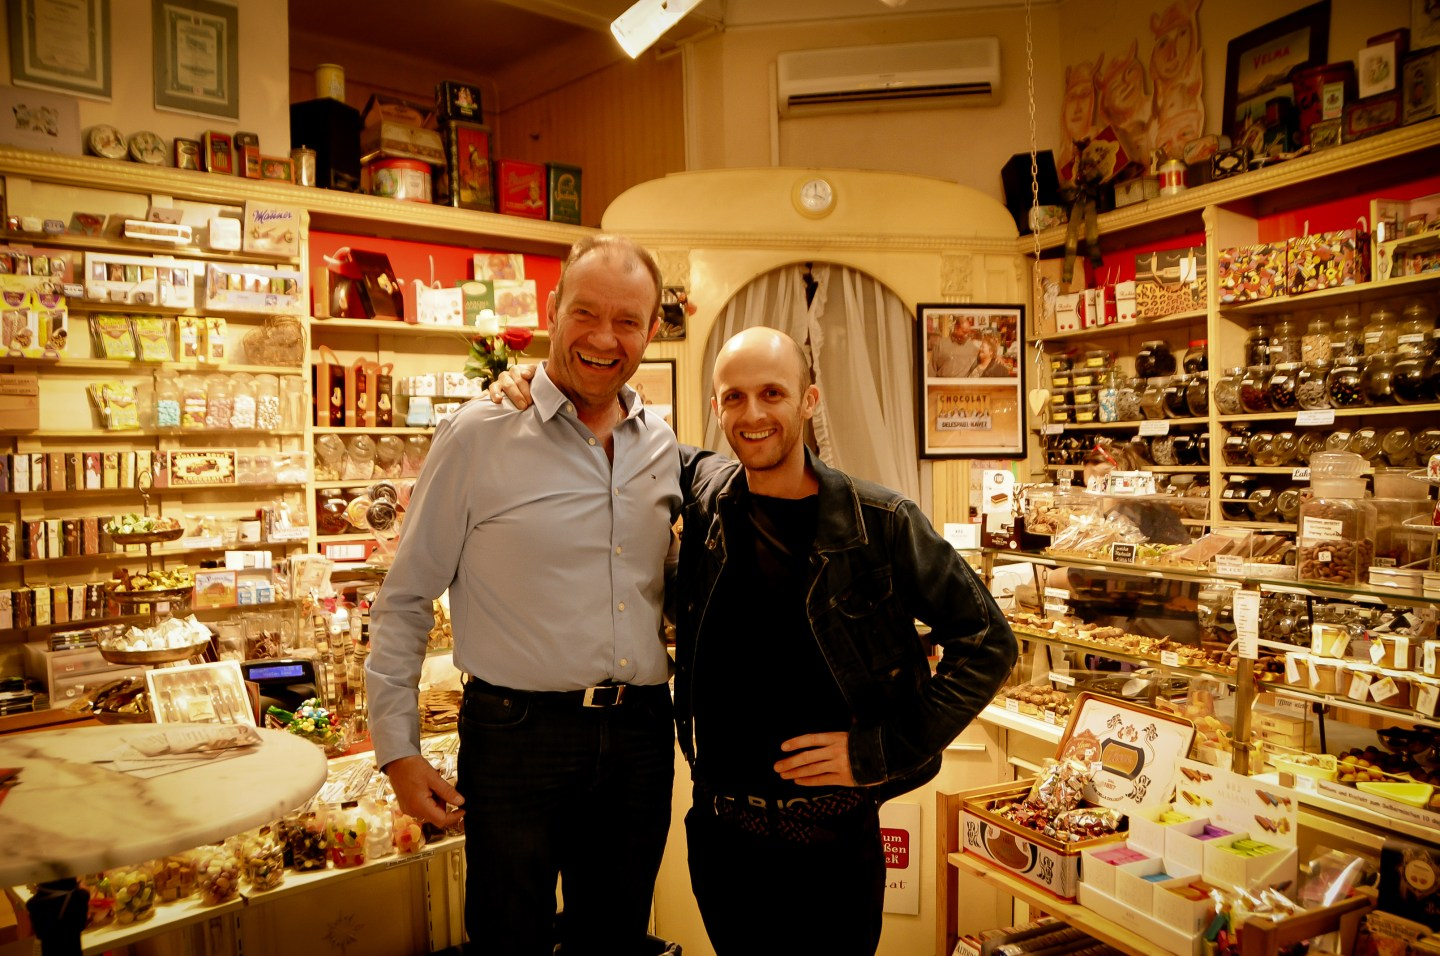 Inside the sweet shop Vienna The Living Daylights